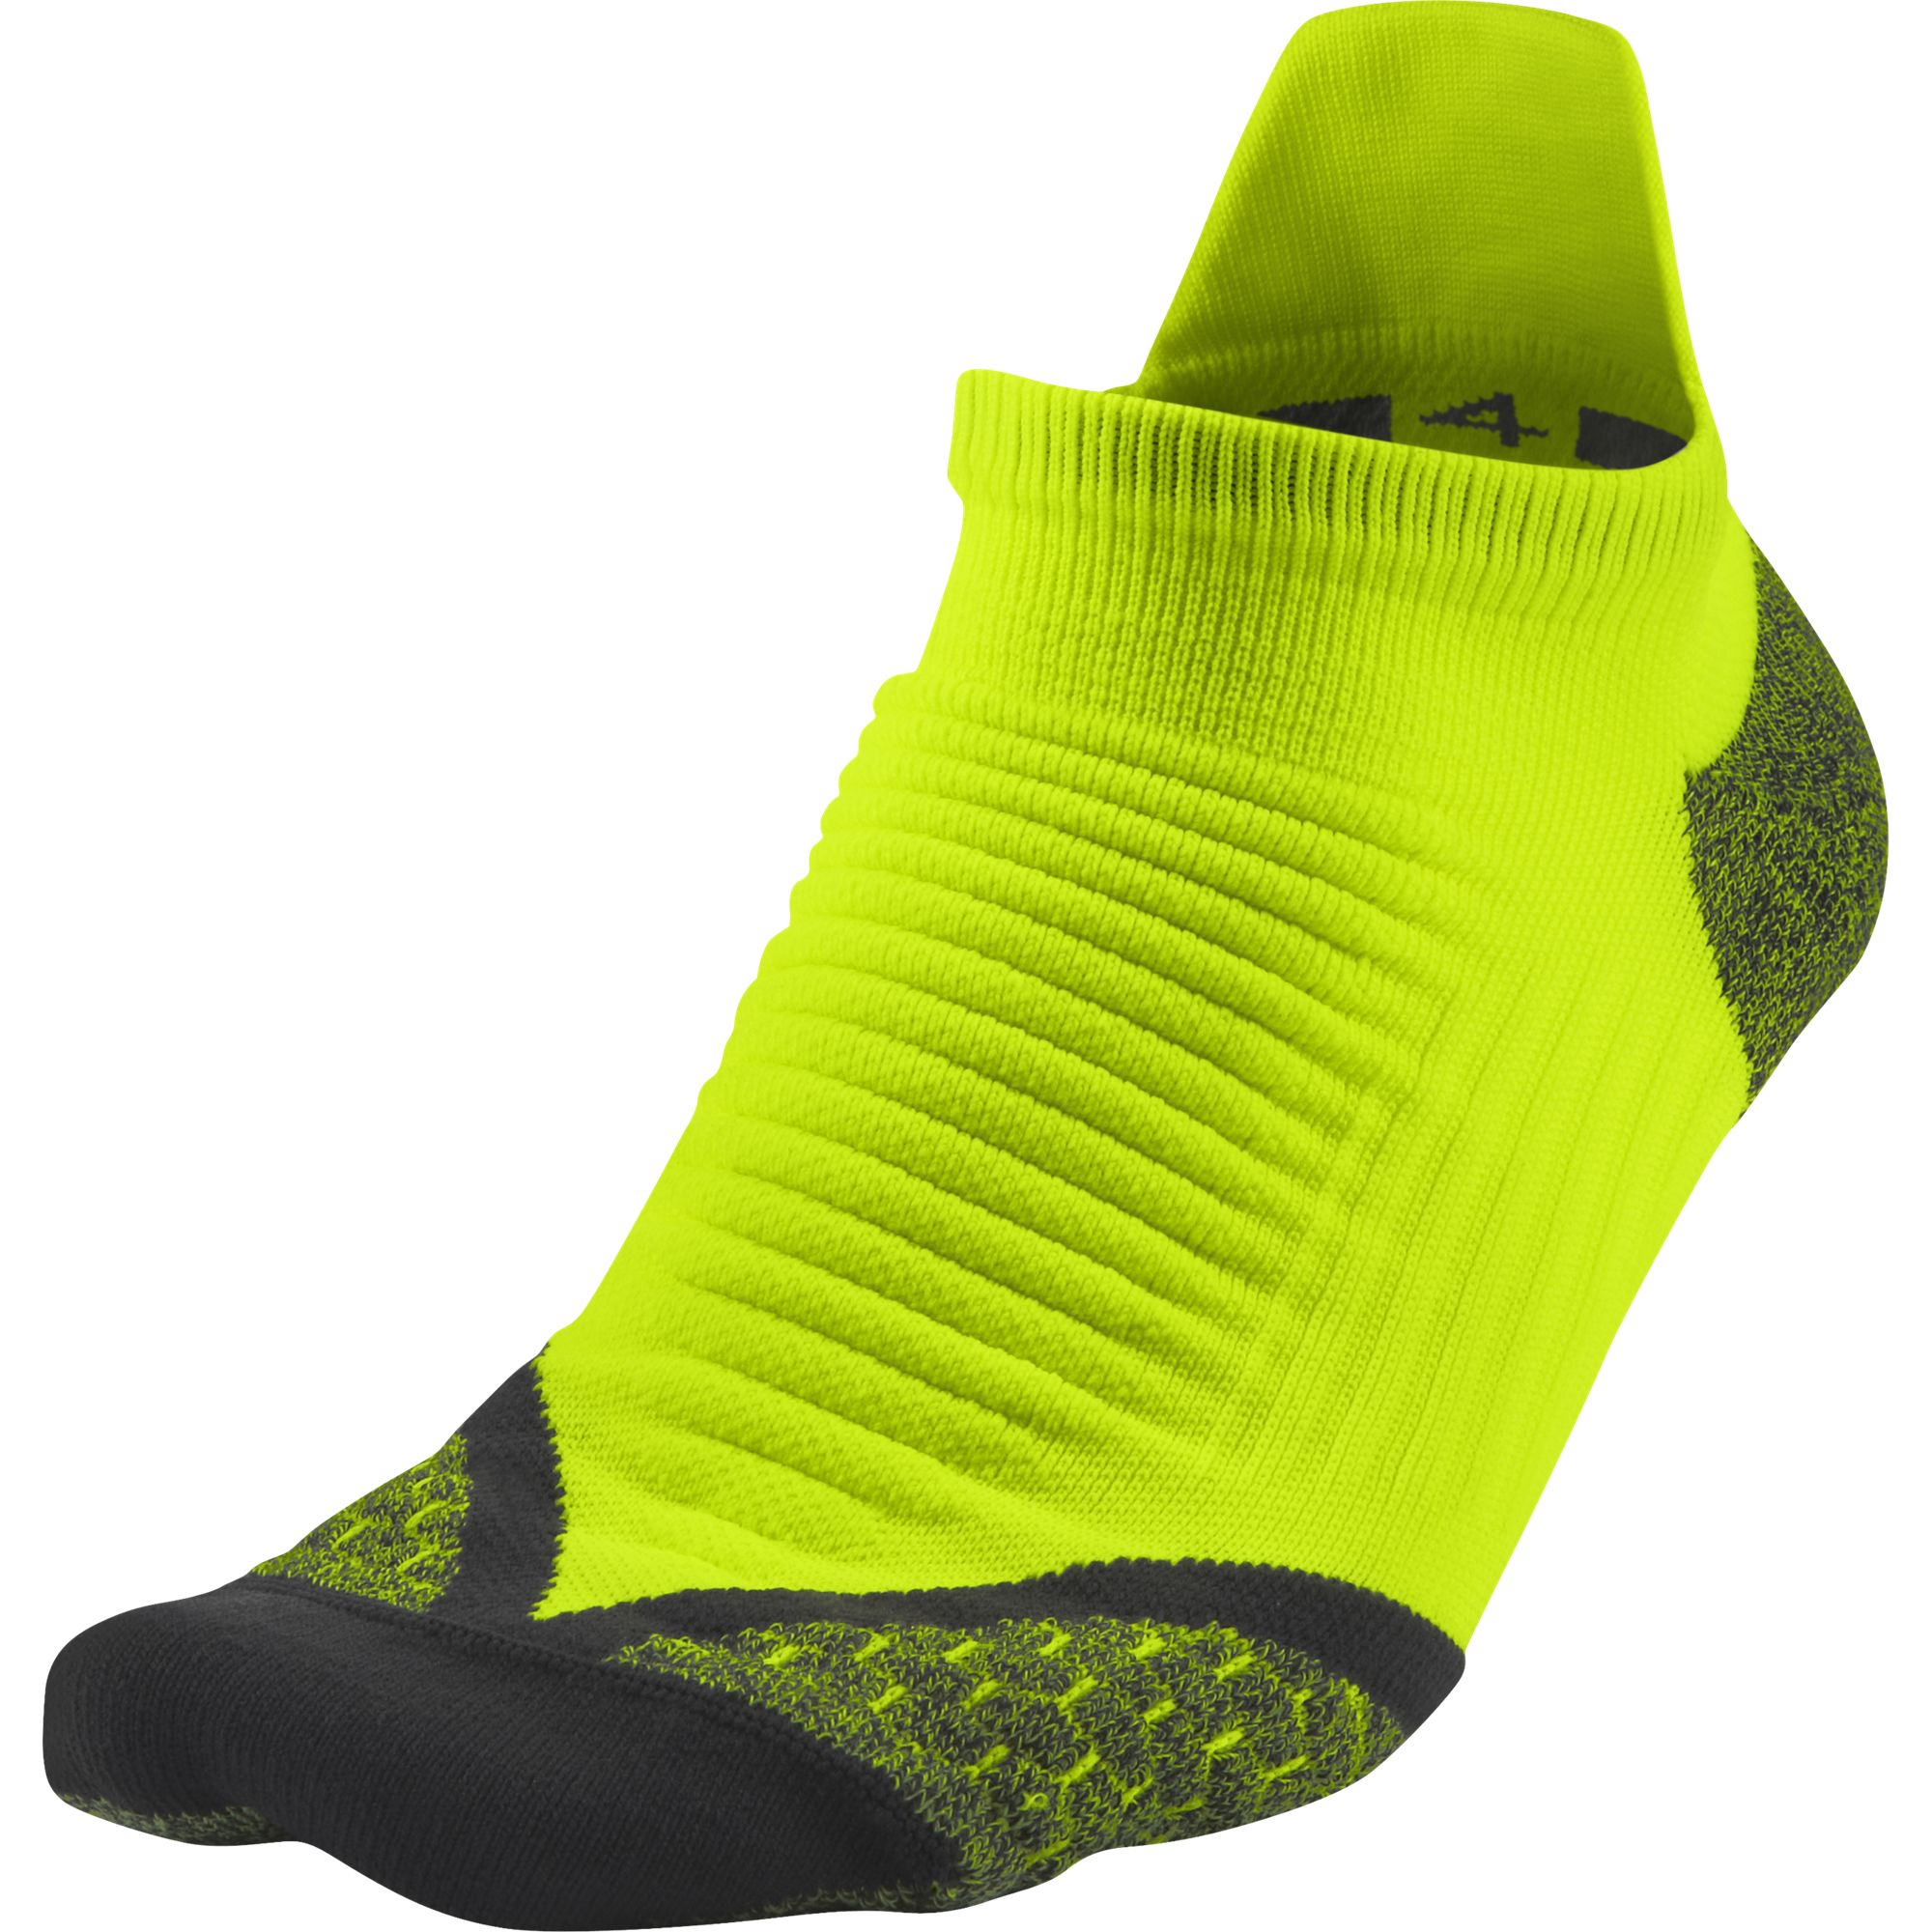 Nike Носки Nike Elite Running Cushion NST, 1 пара повязки nike чулок для щитков nike guard lock elite se0173 011